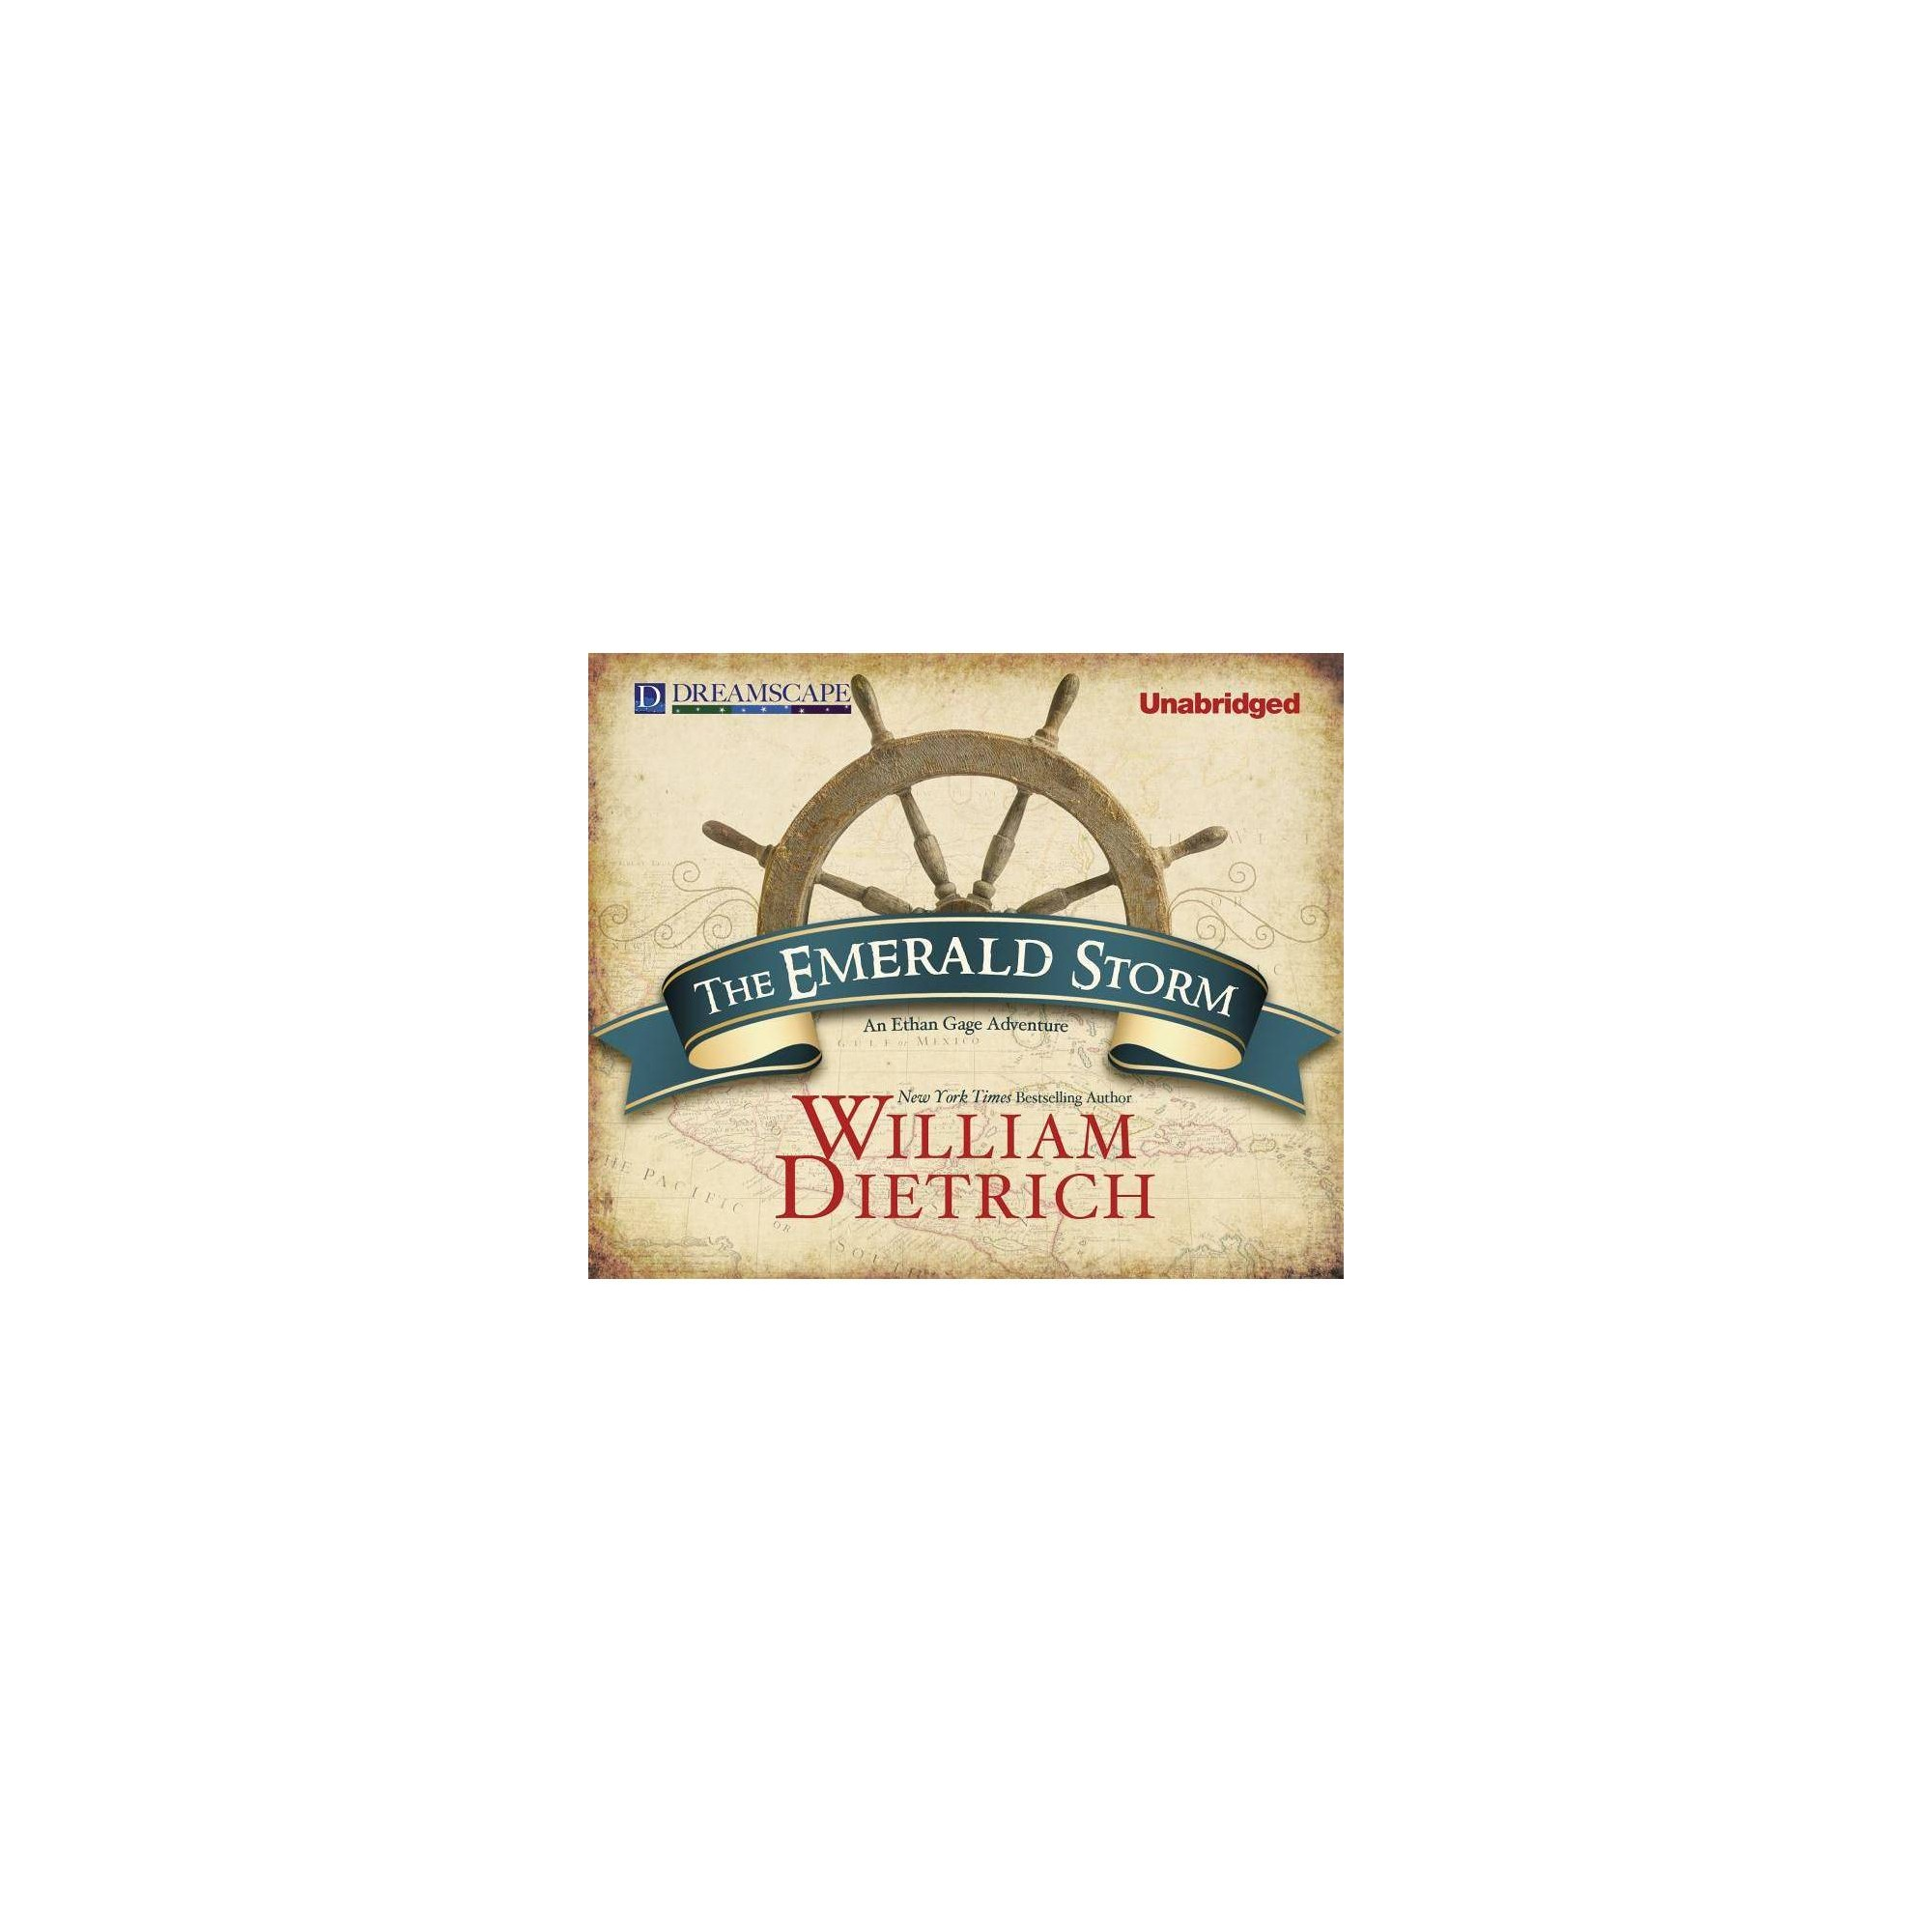 The Emerald Storm - (Ethan Gage Adventures) by William Dietrich (AudioCD)